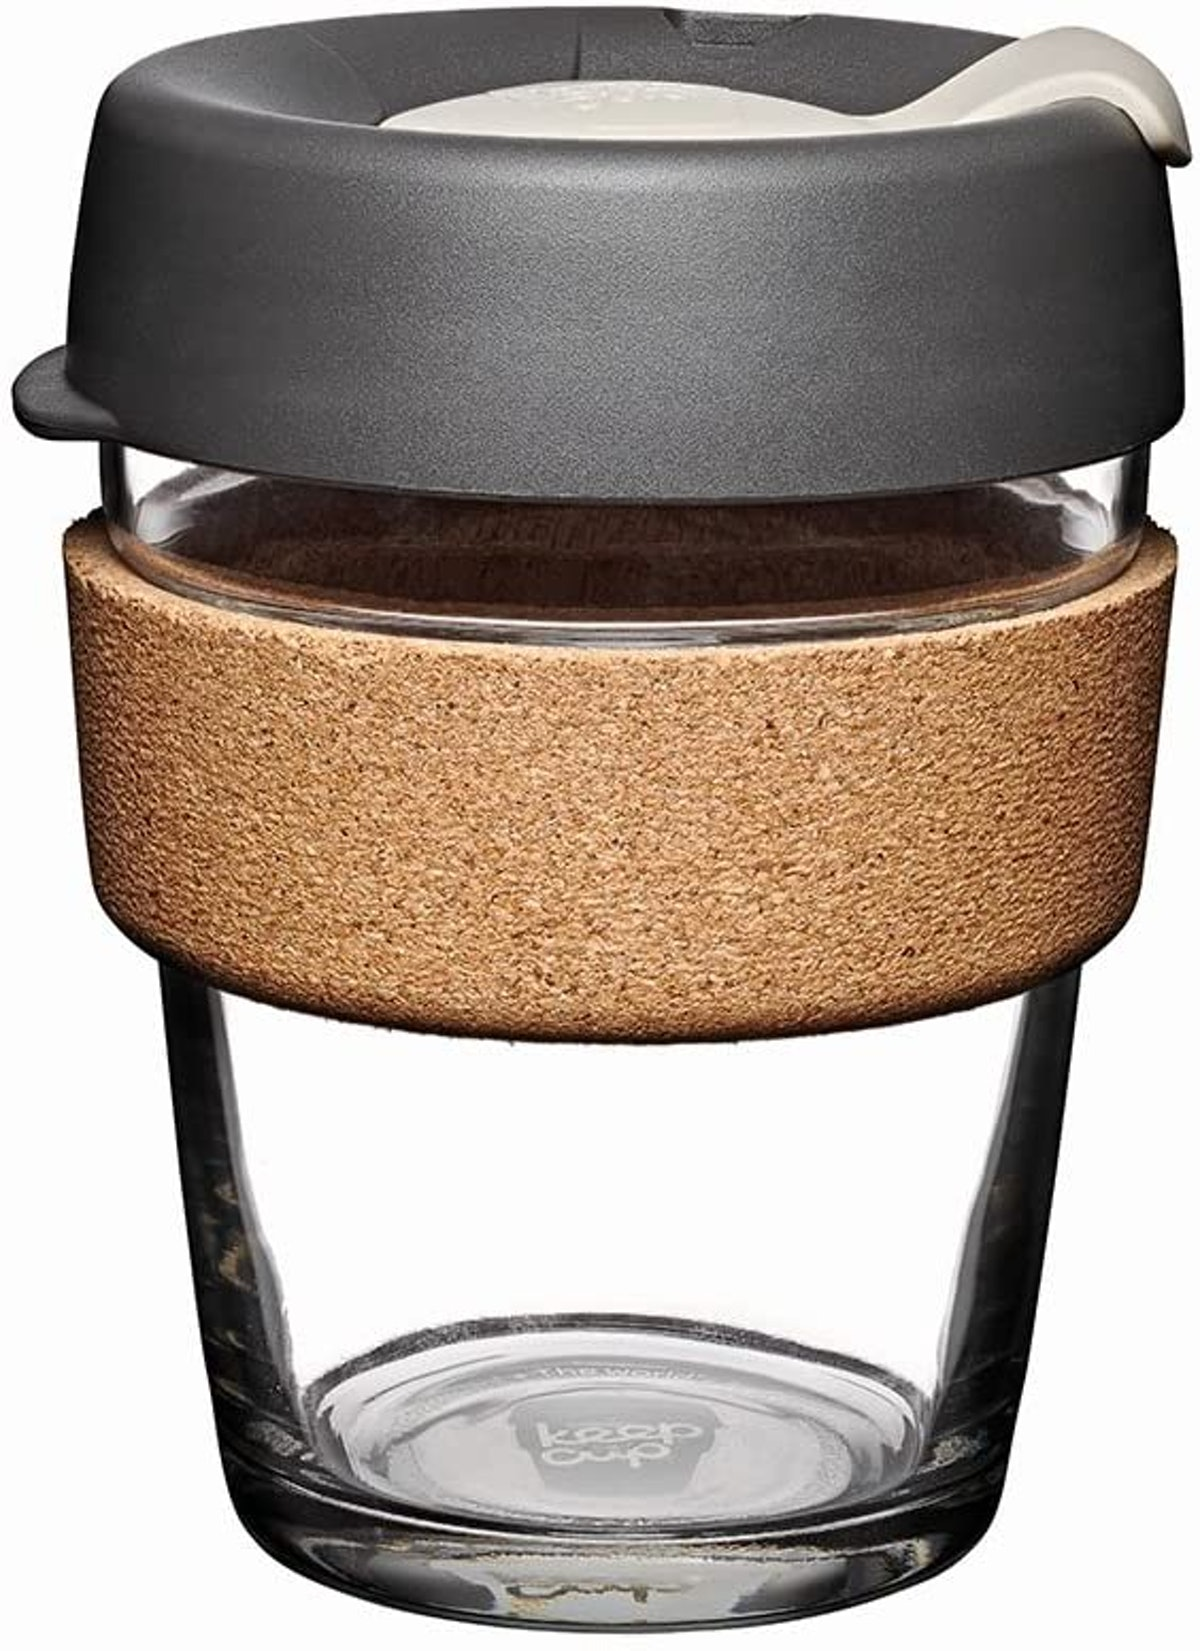 KeepCup Reusable Glass Cup with Cork